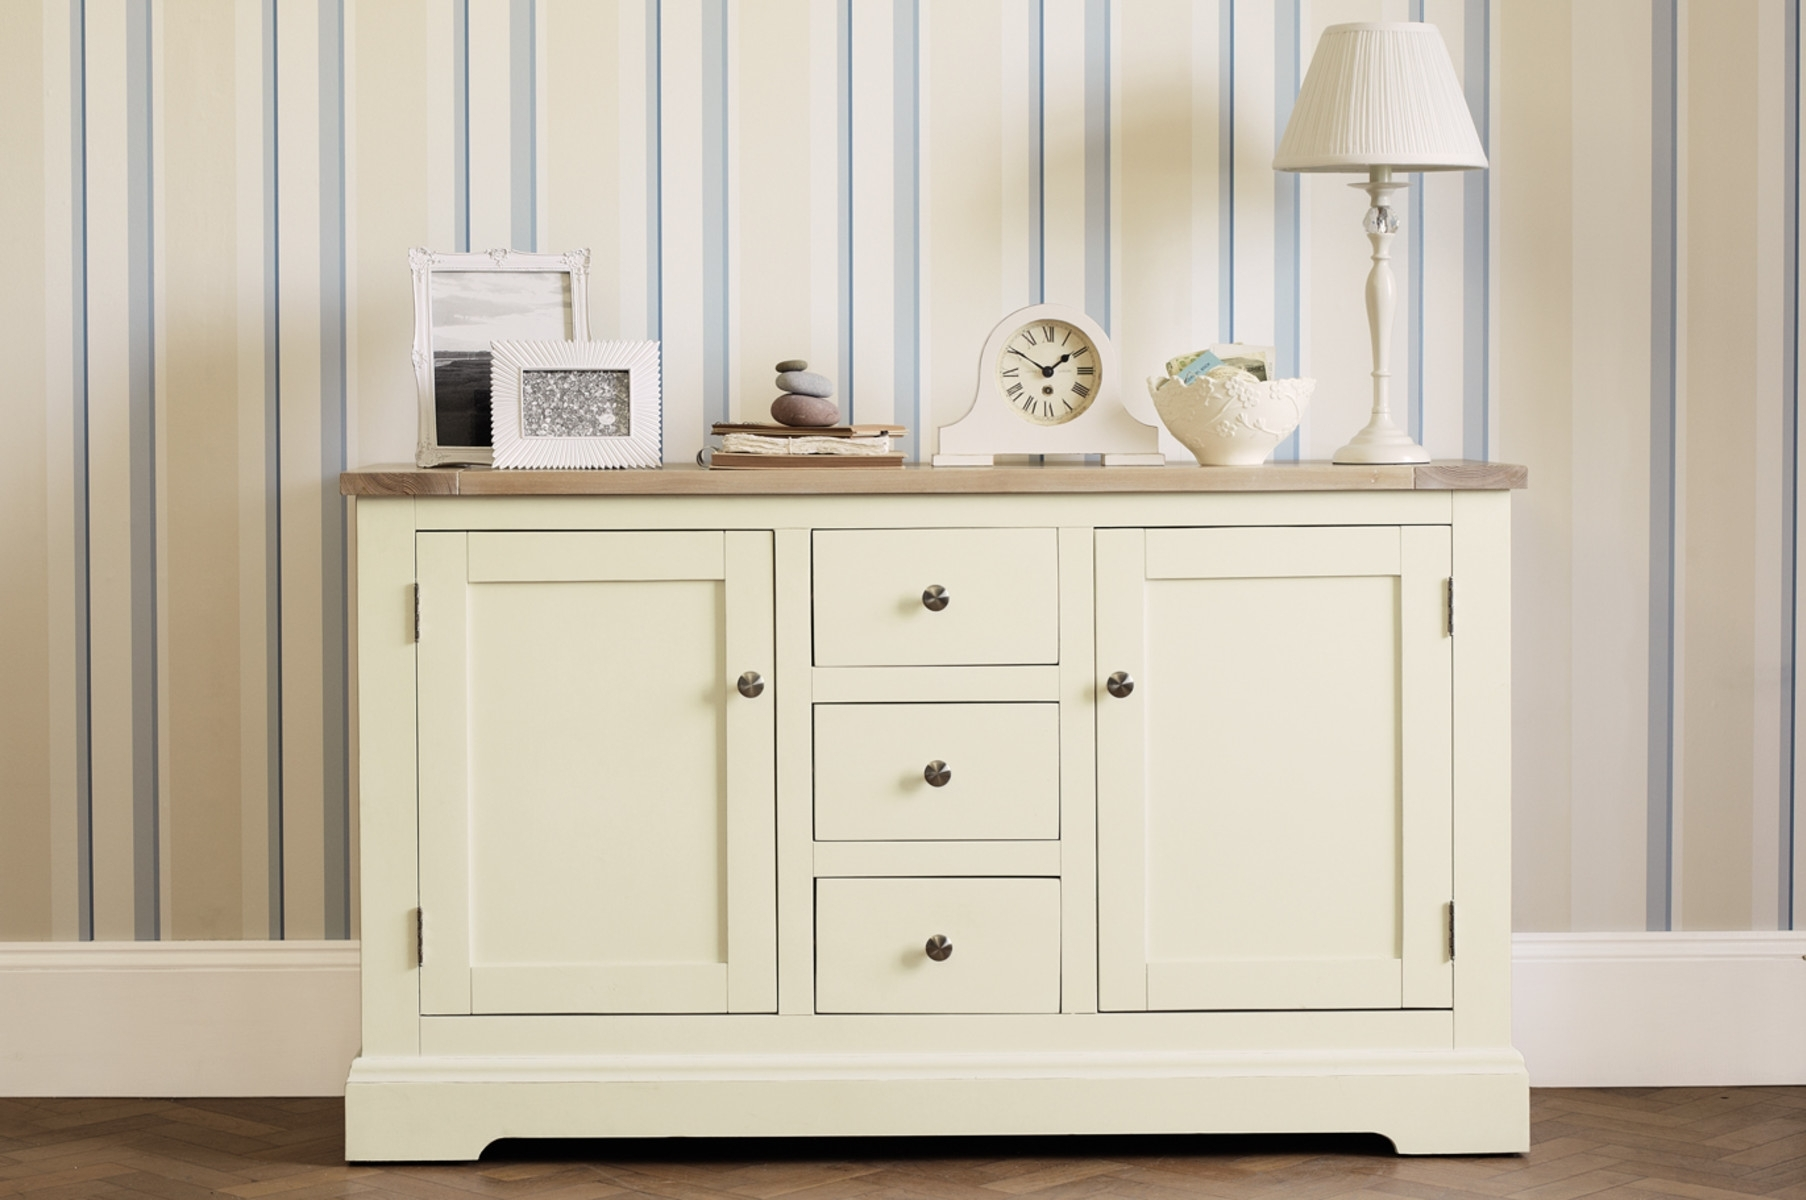 Made To Order Furniture - Dorset White 2 Door 3 Drawer Sideboard in Antique White Distressed 3-Drawer/2-Door Sideboards (Image 20 of 30)